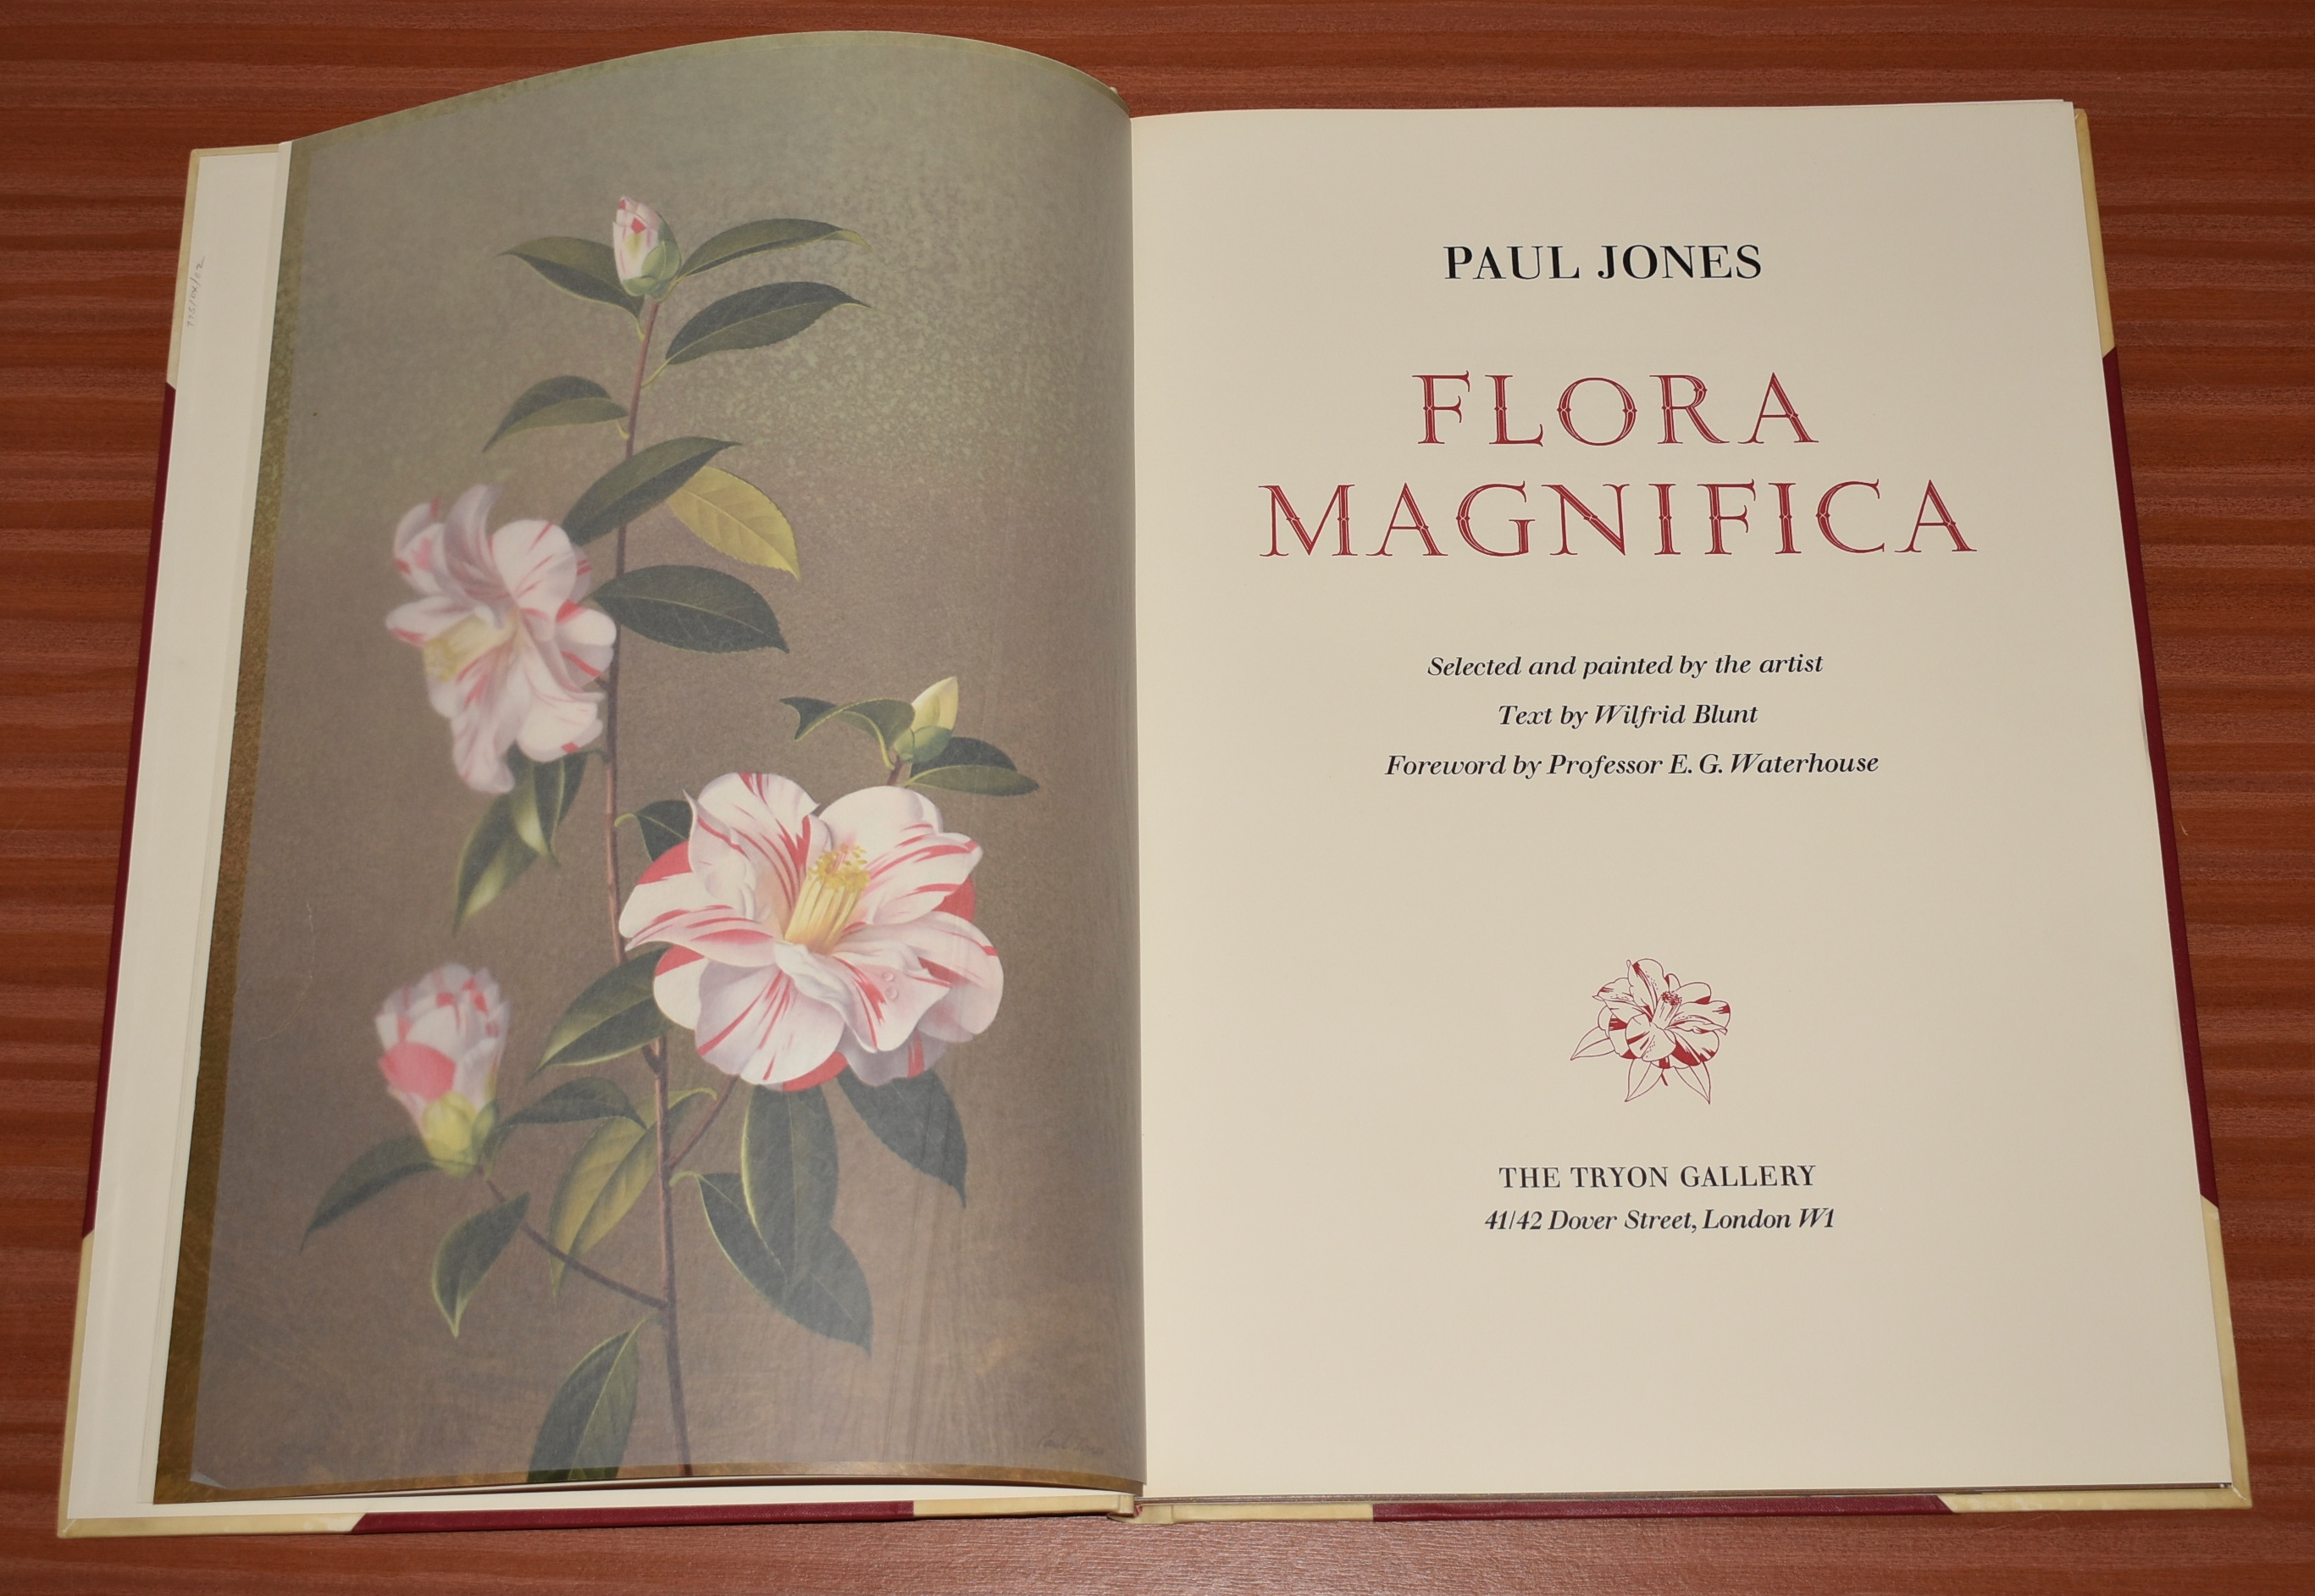 Image for Flora Magnifica. Signed by the artist (Paul Jones) to the limitation page. Wilfred Blunt (text); with a Preface by Sir George Taylor.